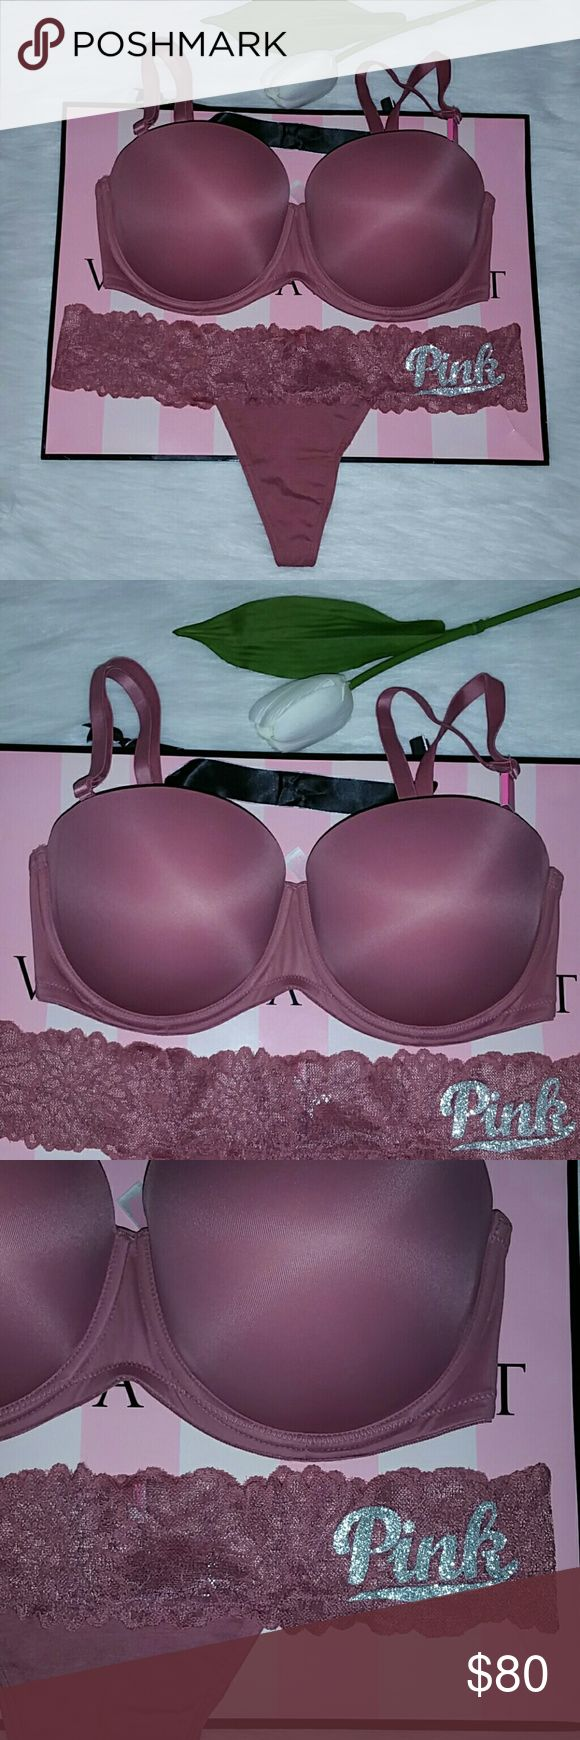 Nwt Pink Vs Multi Way Push-up Bra 34DD+Thong L Brand new with tag pink victoria's secret Multi way push up bra 34DD + Panty Thong size L. Smoke and pet free home.  Fast shipping + extra gift.  I  don't trade love.  Available  Lowest 45  Available  Feel free to buy . PINK Victoria's Secret Intimates & Sleepwear Bras